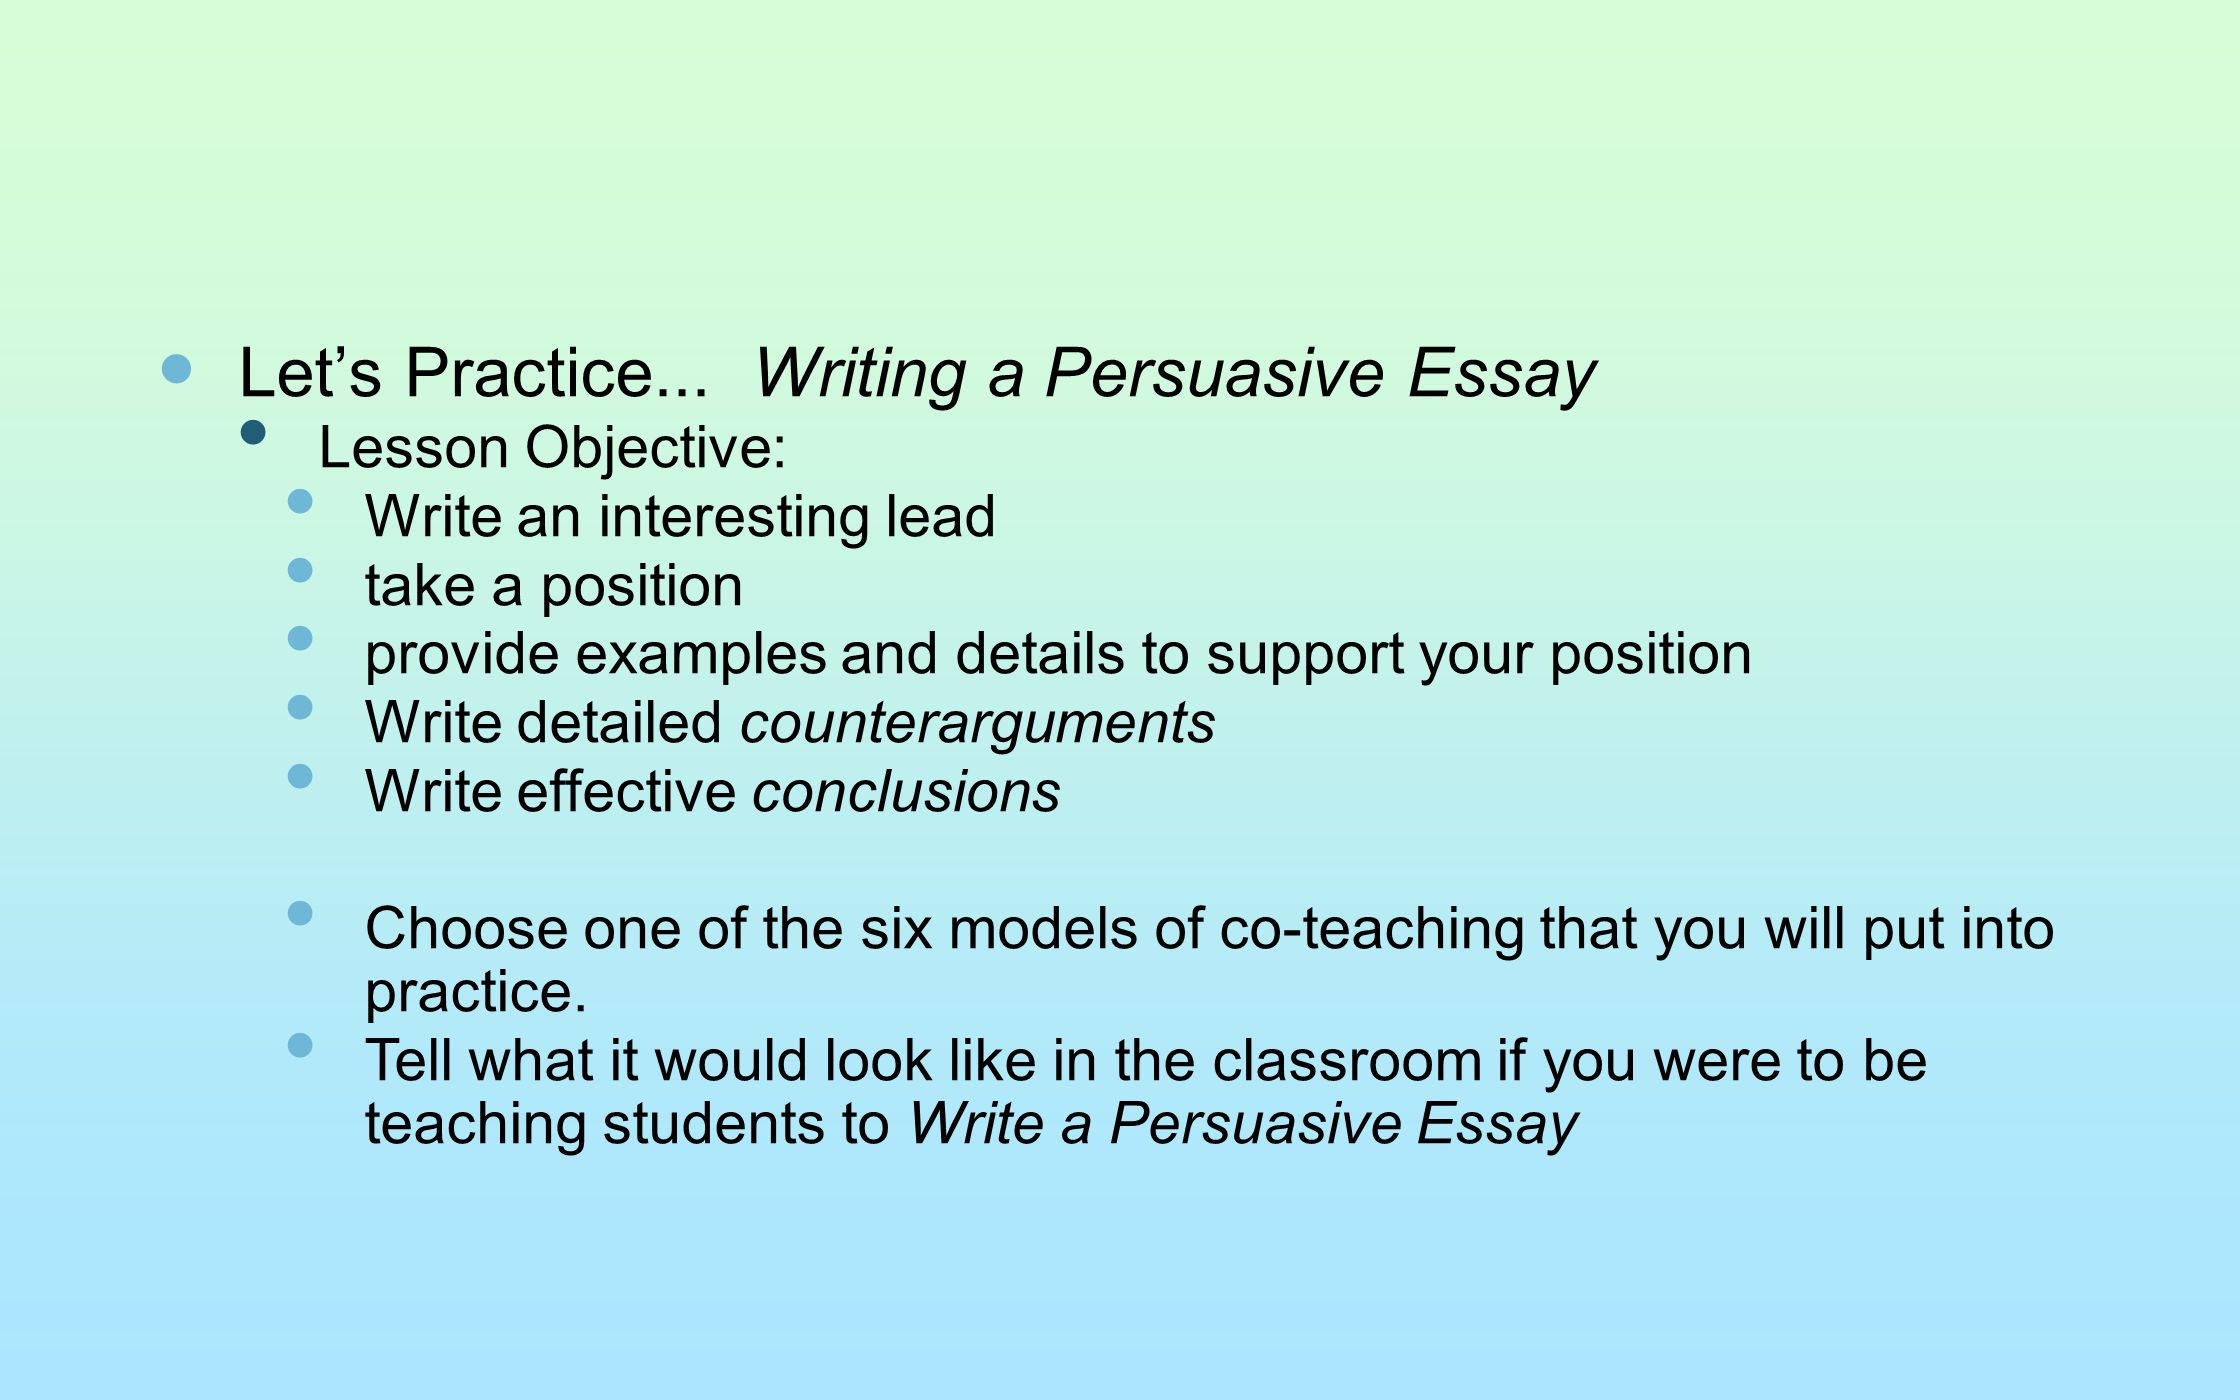 Let's Practice... Writing a Persuasive Essay